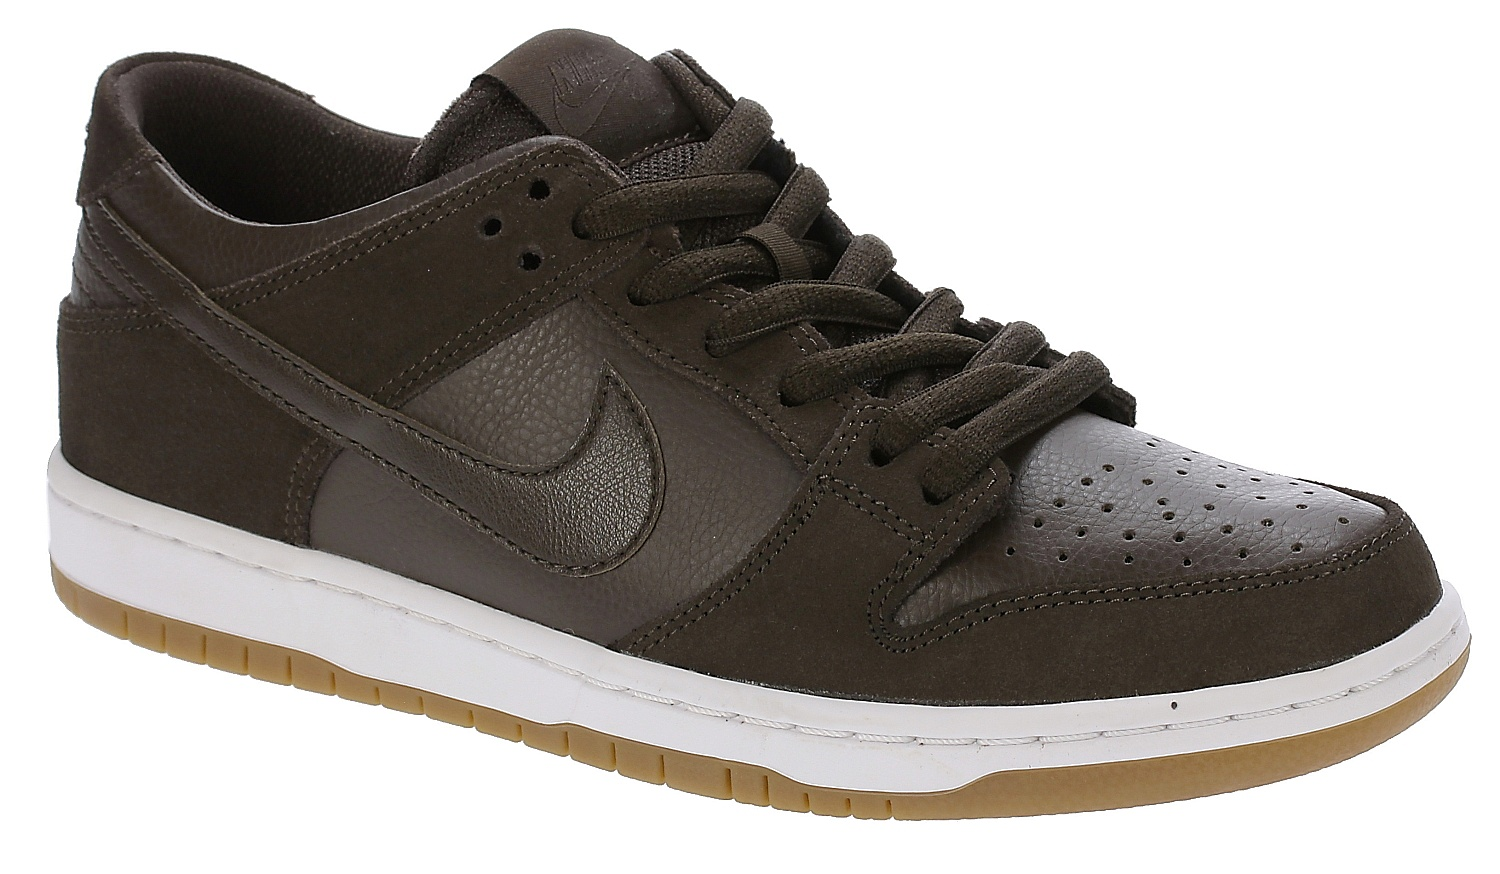 huge selection of 492ad 2cf5c shoes Nike SB Dunk Low Pro Ishod Wair - Baroque Brown Baroque Brown White -  Snowboard shop, skateshop - snowboard-online.eu